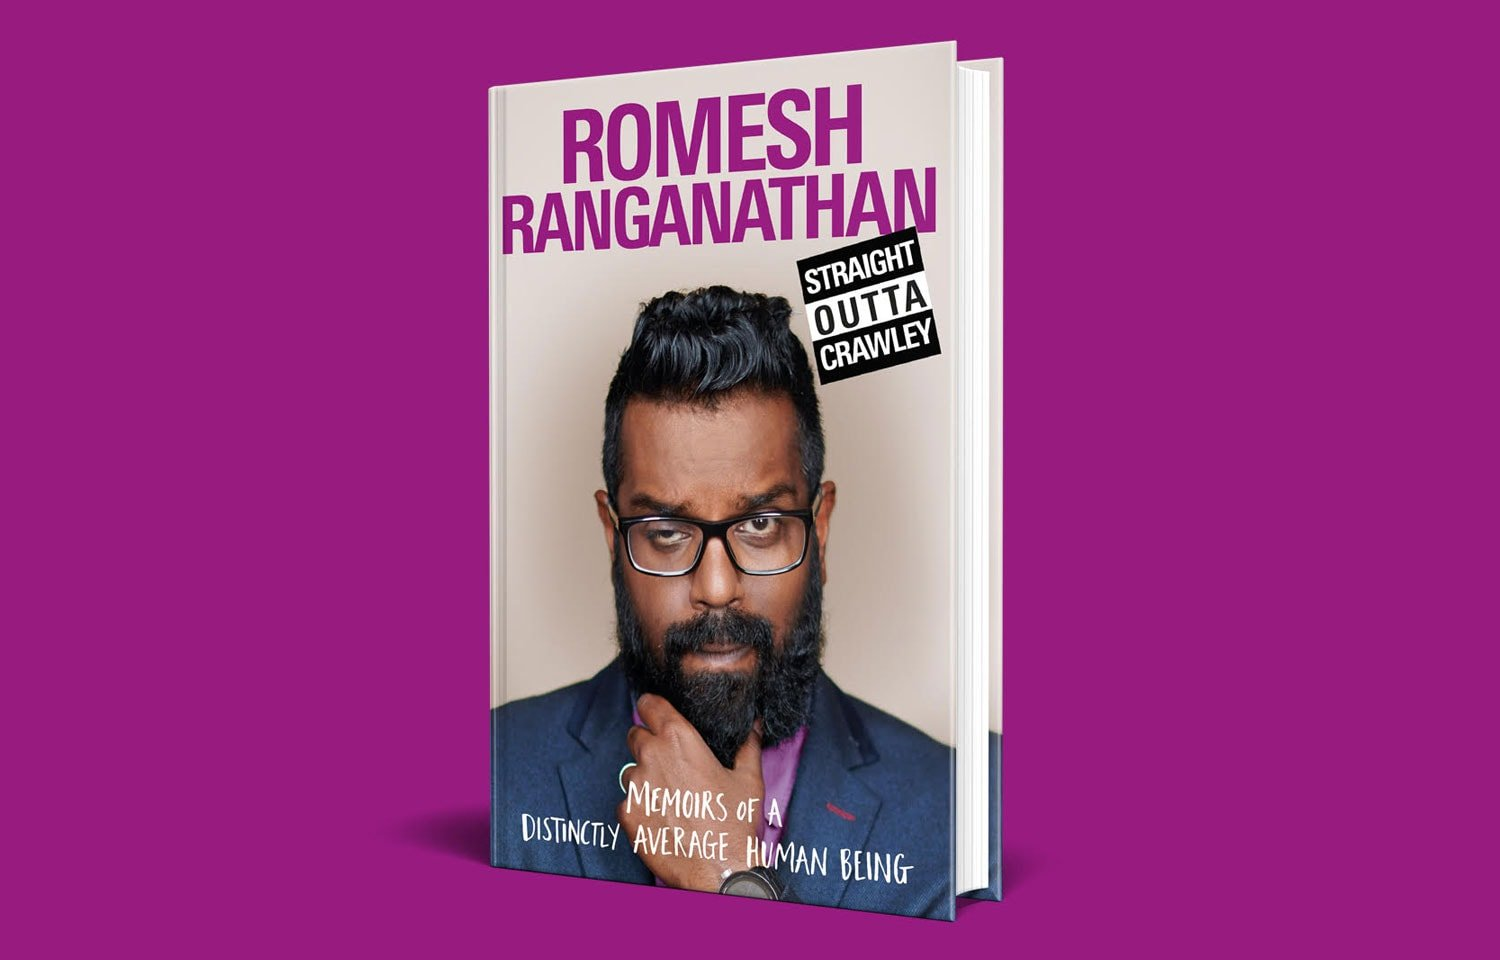 ROMESH RANGANATHAN'S STRAIGHT OUTTA CRAWLEY RELEASED SOON